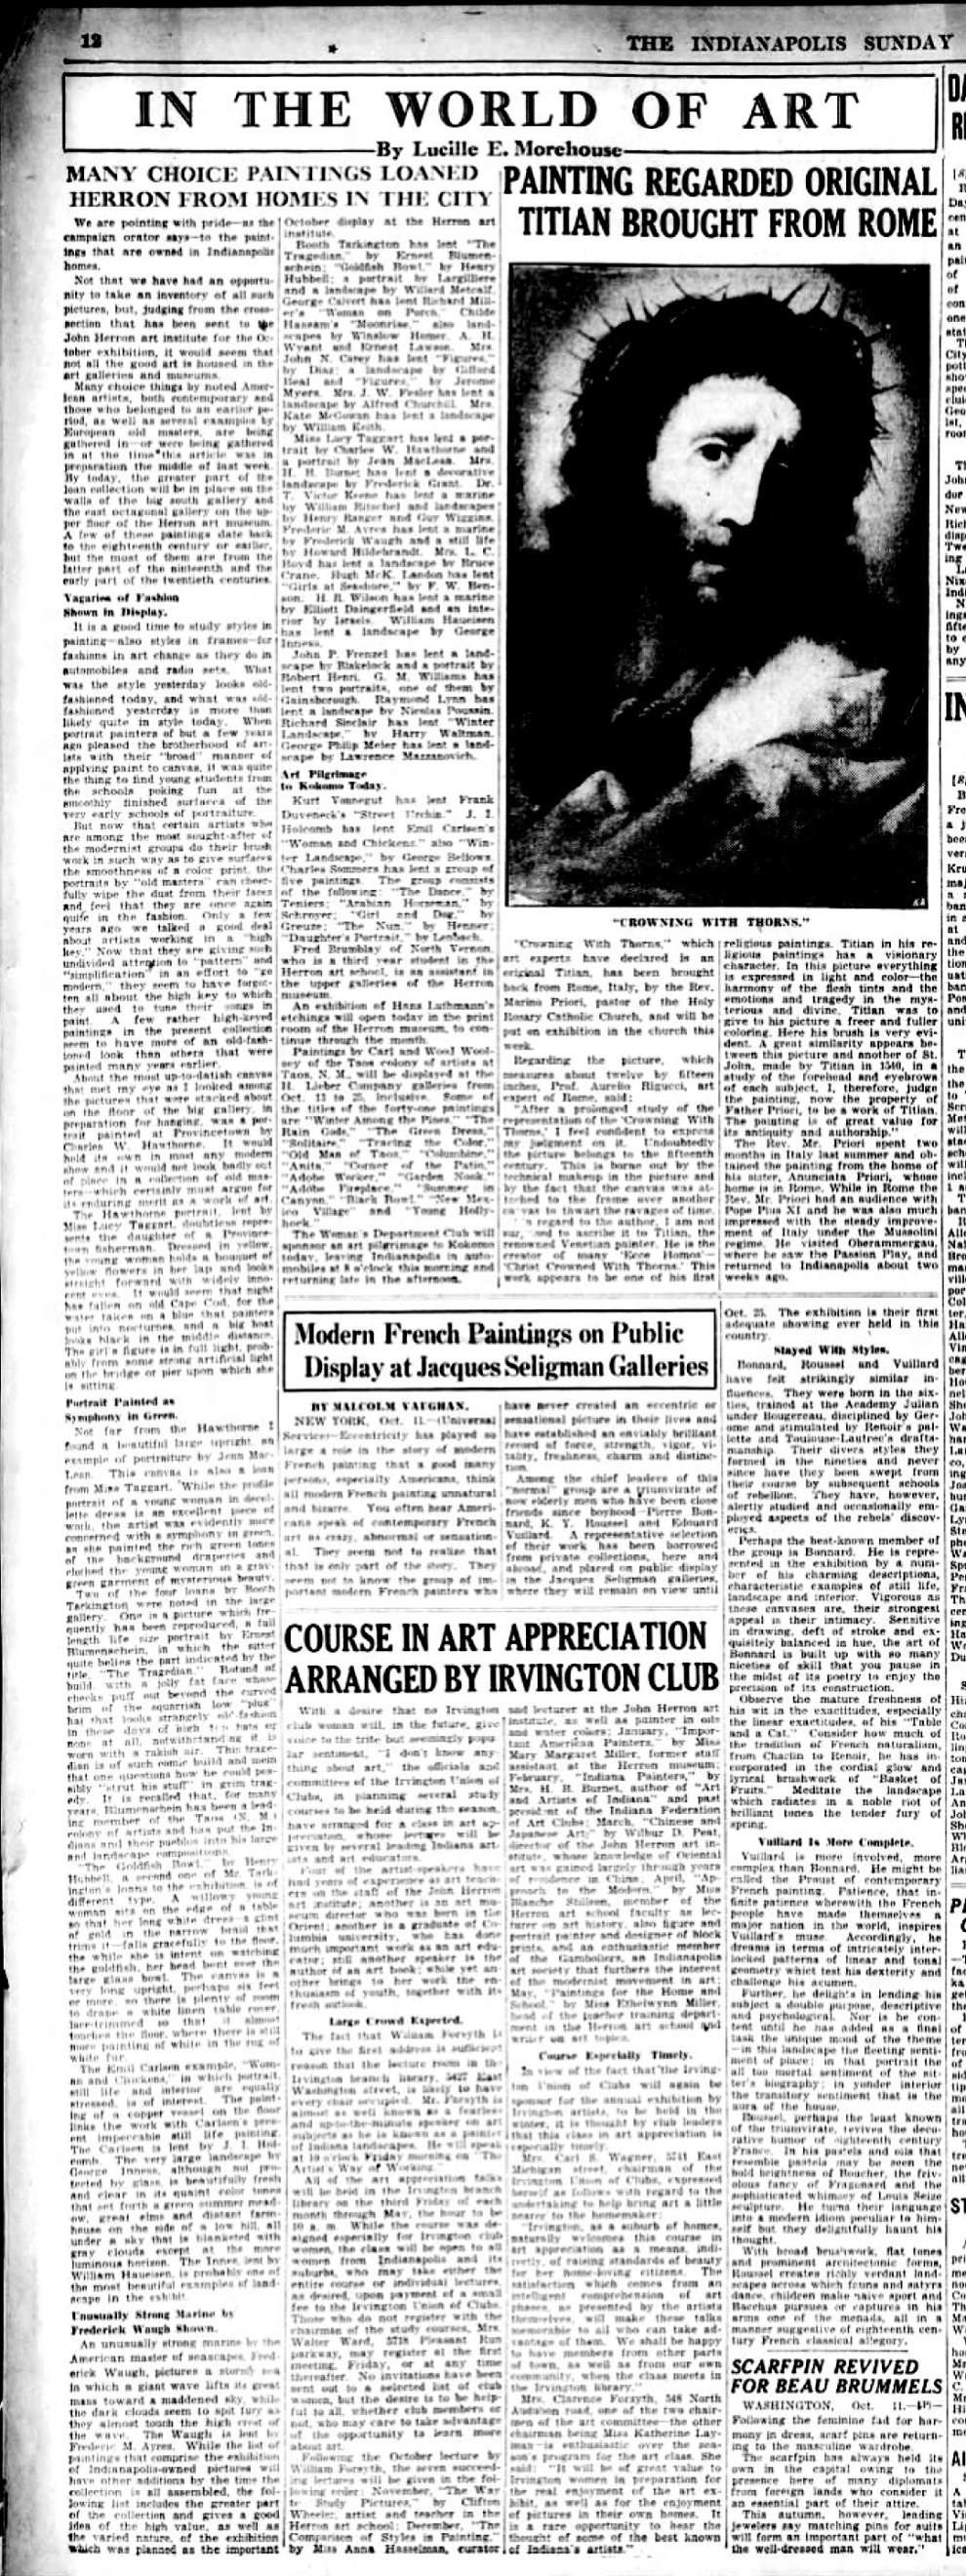 """The Indianapolis Star, Indianapolis, IN, """"In the world of art"""" by Lucille E Morehouse, Sunday, October 12, 1930, page 56, not illustrated."""